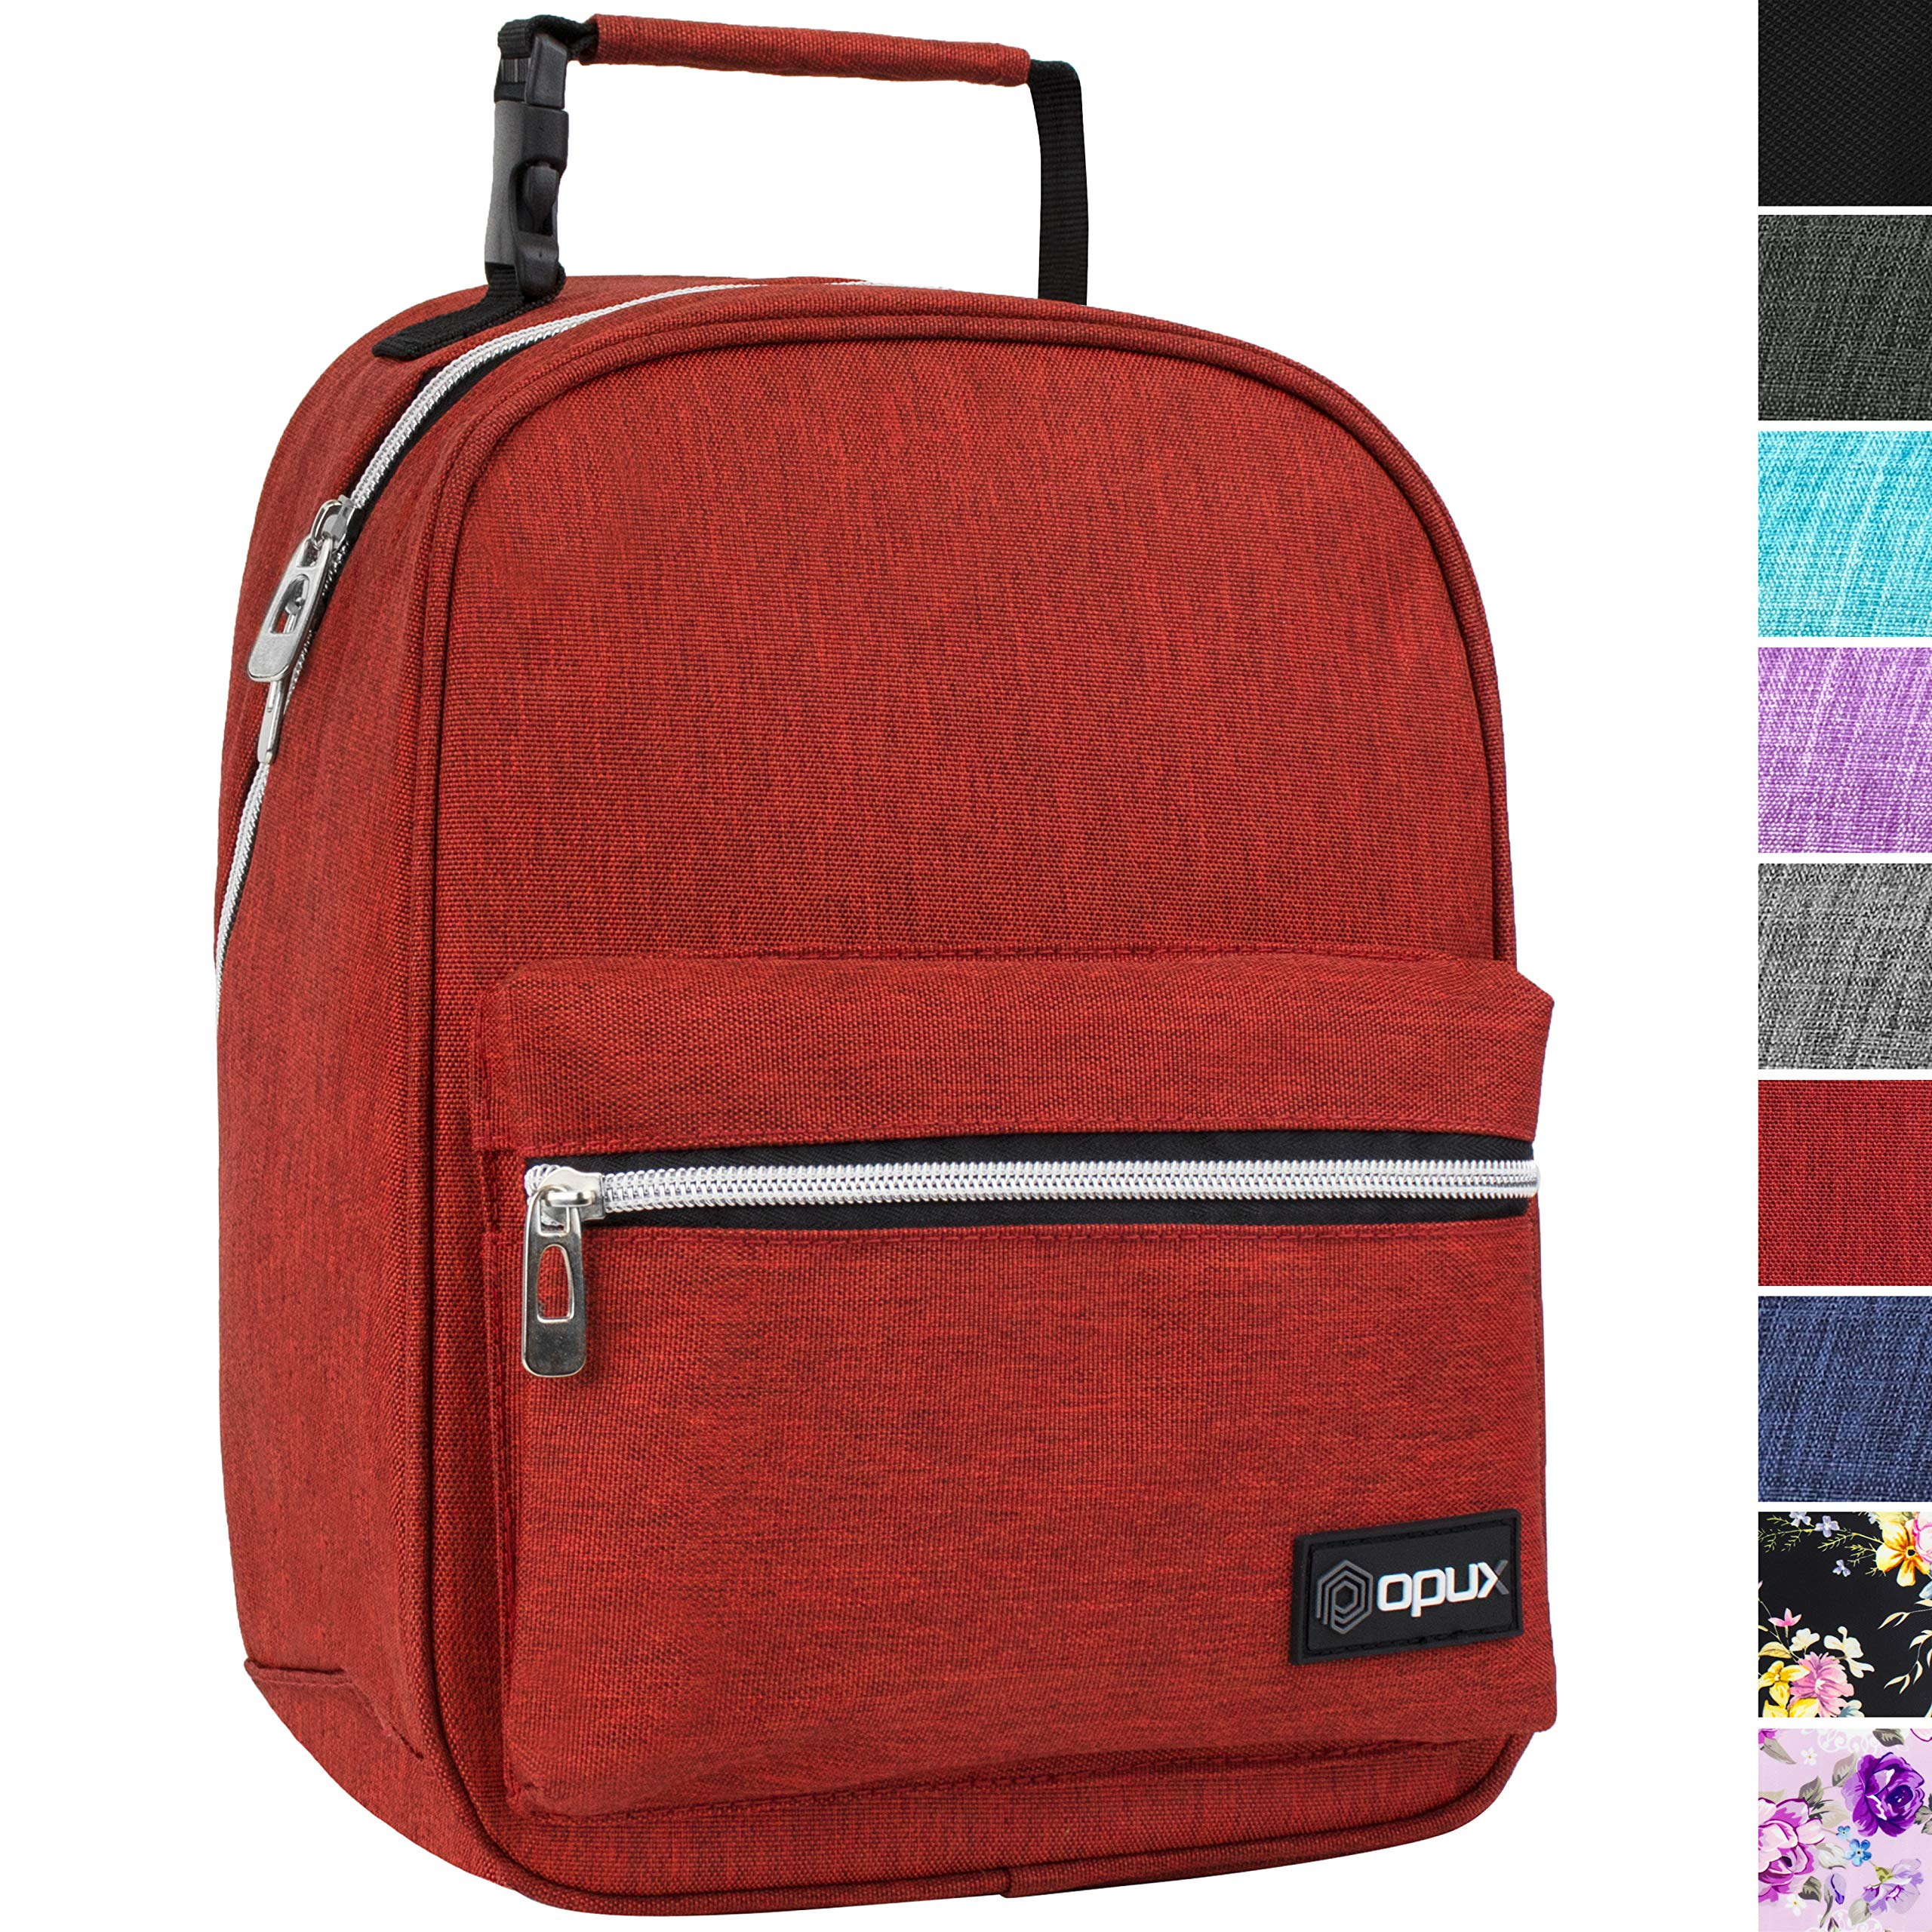 OPUX Premium Insulated Lunch Box for Boys, Girls | Durable Leakproof School Lunch Bag with Handle Clip, Mesh Pocket | Reusable Work Lunch Pail Cooler for Adult, Men, Women | Fits 14 Soda Cans (Red)